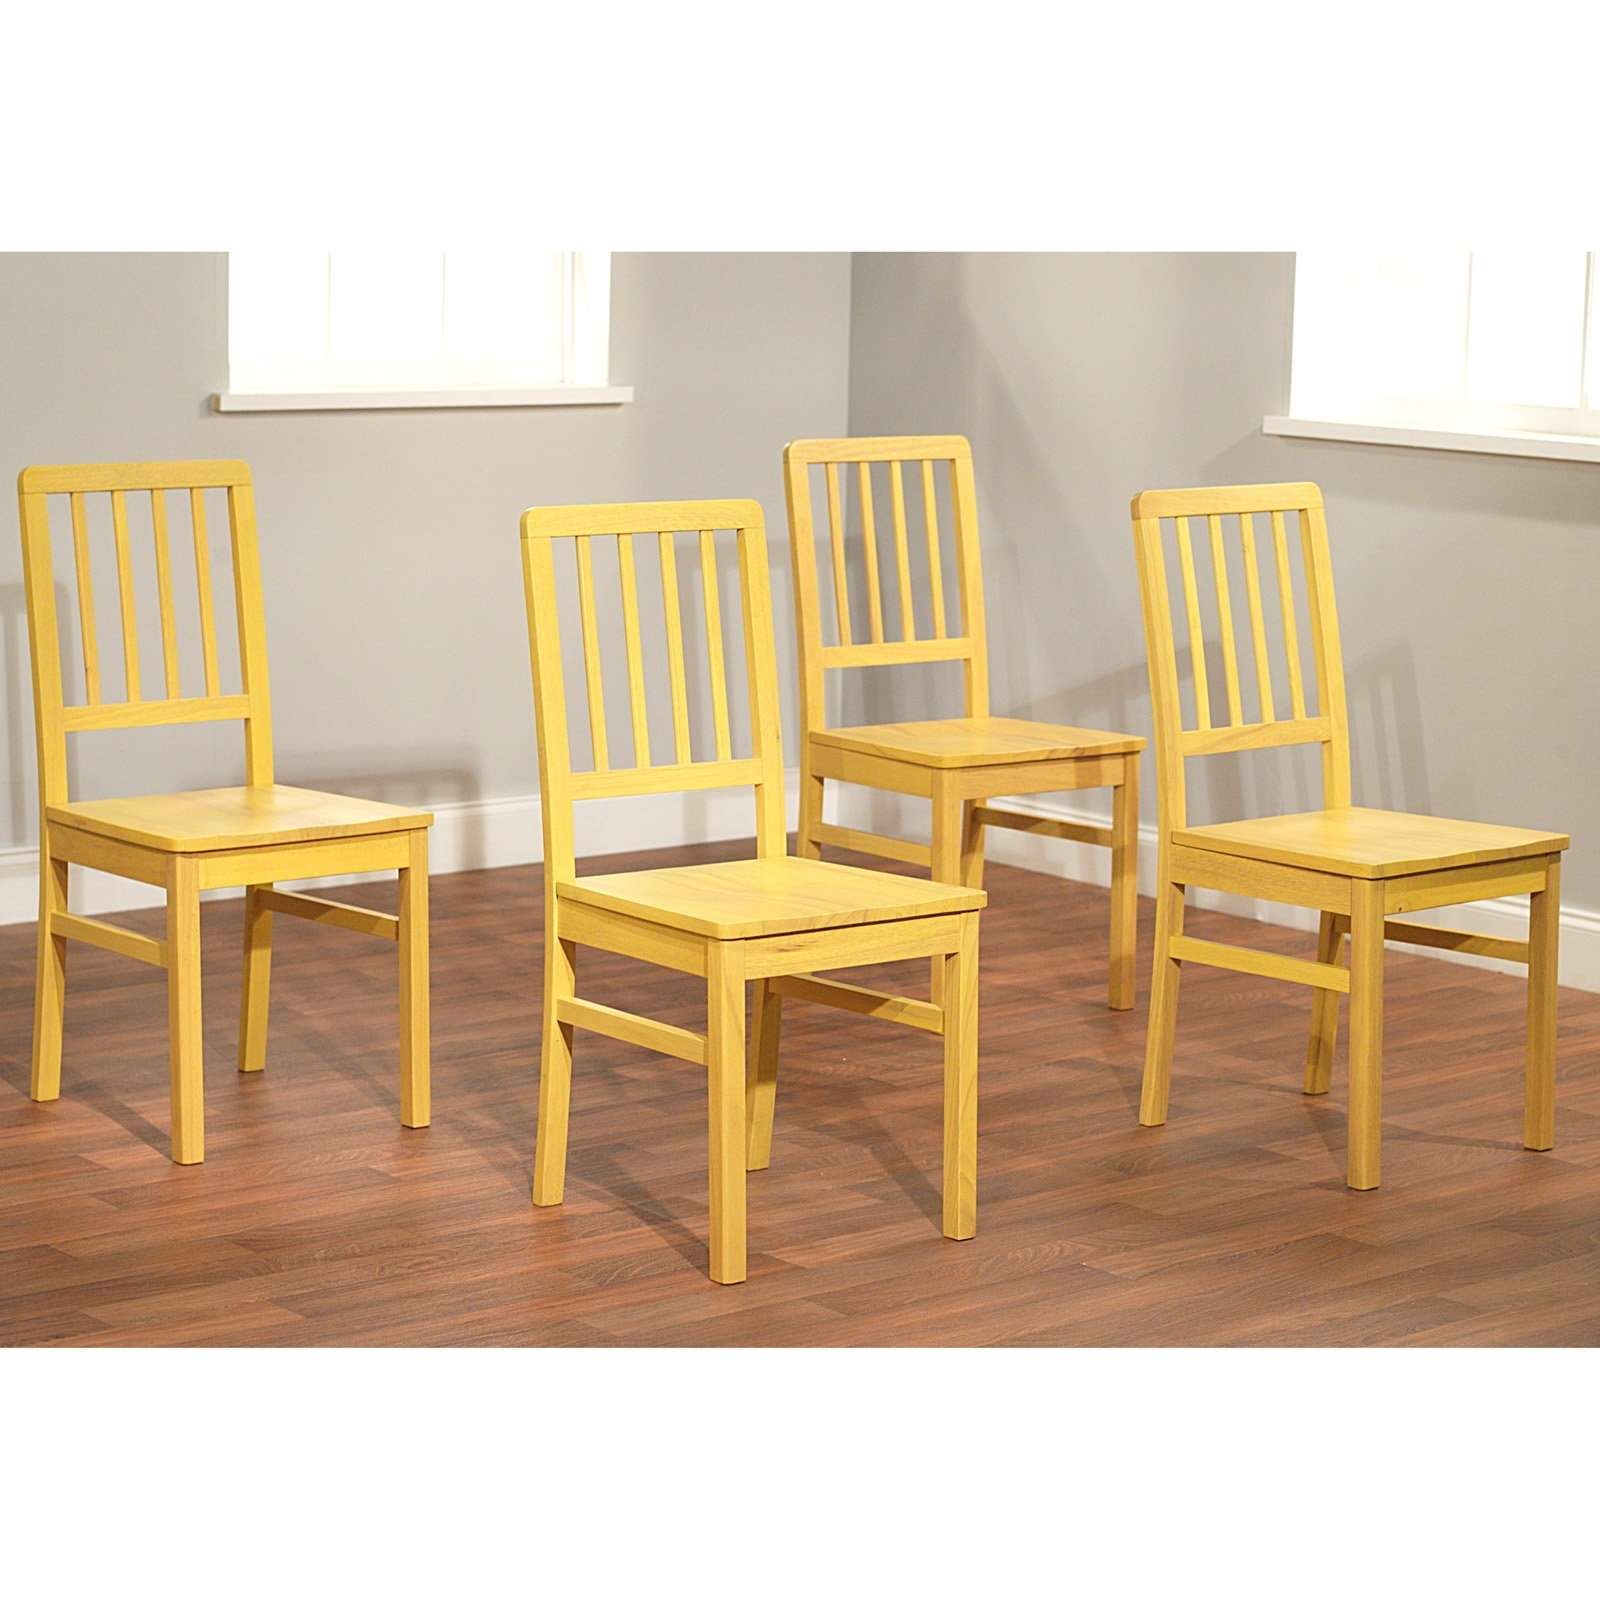 Camden Dining Chairs With Famous Camden Dining Chair Set Of 4, Multiple Colors – Walmart (View 4 of 20)